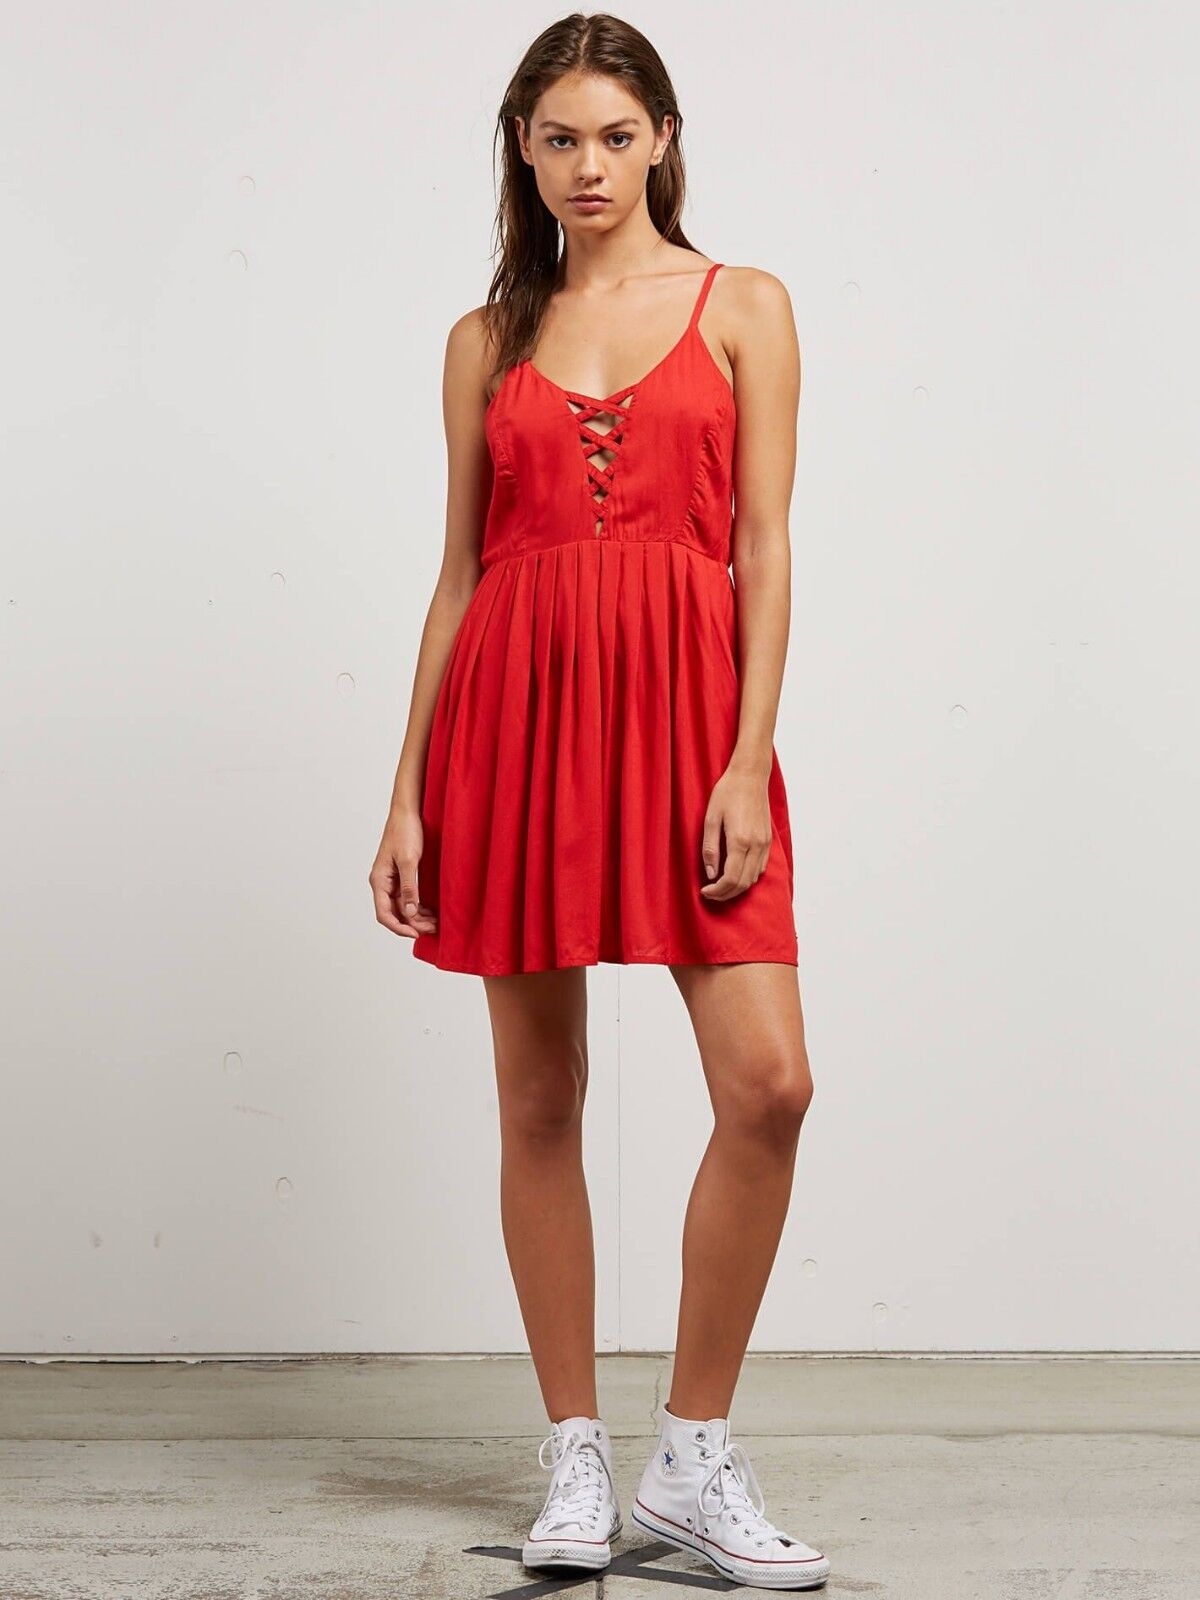 2018 NWT WOMENS VOLCOM CROSS PATHS DRESS  50 S rad red strappy woven lattice